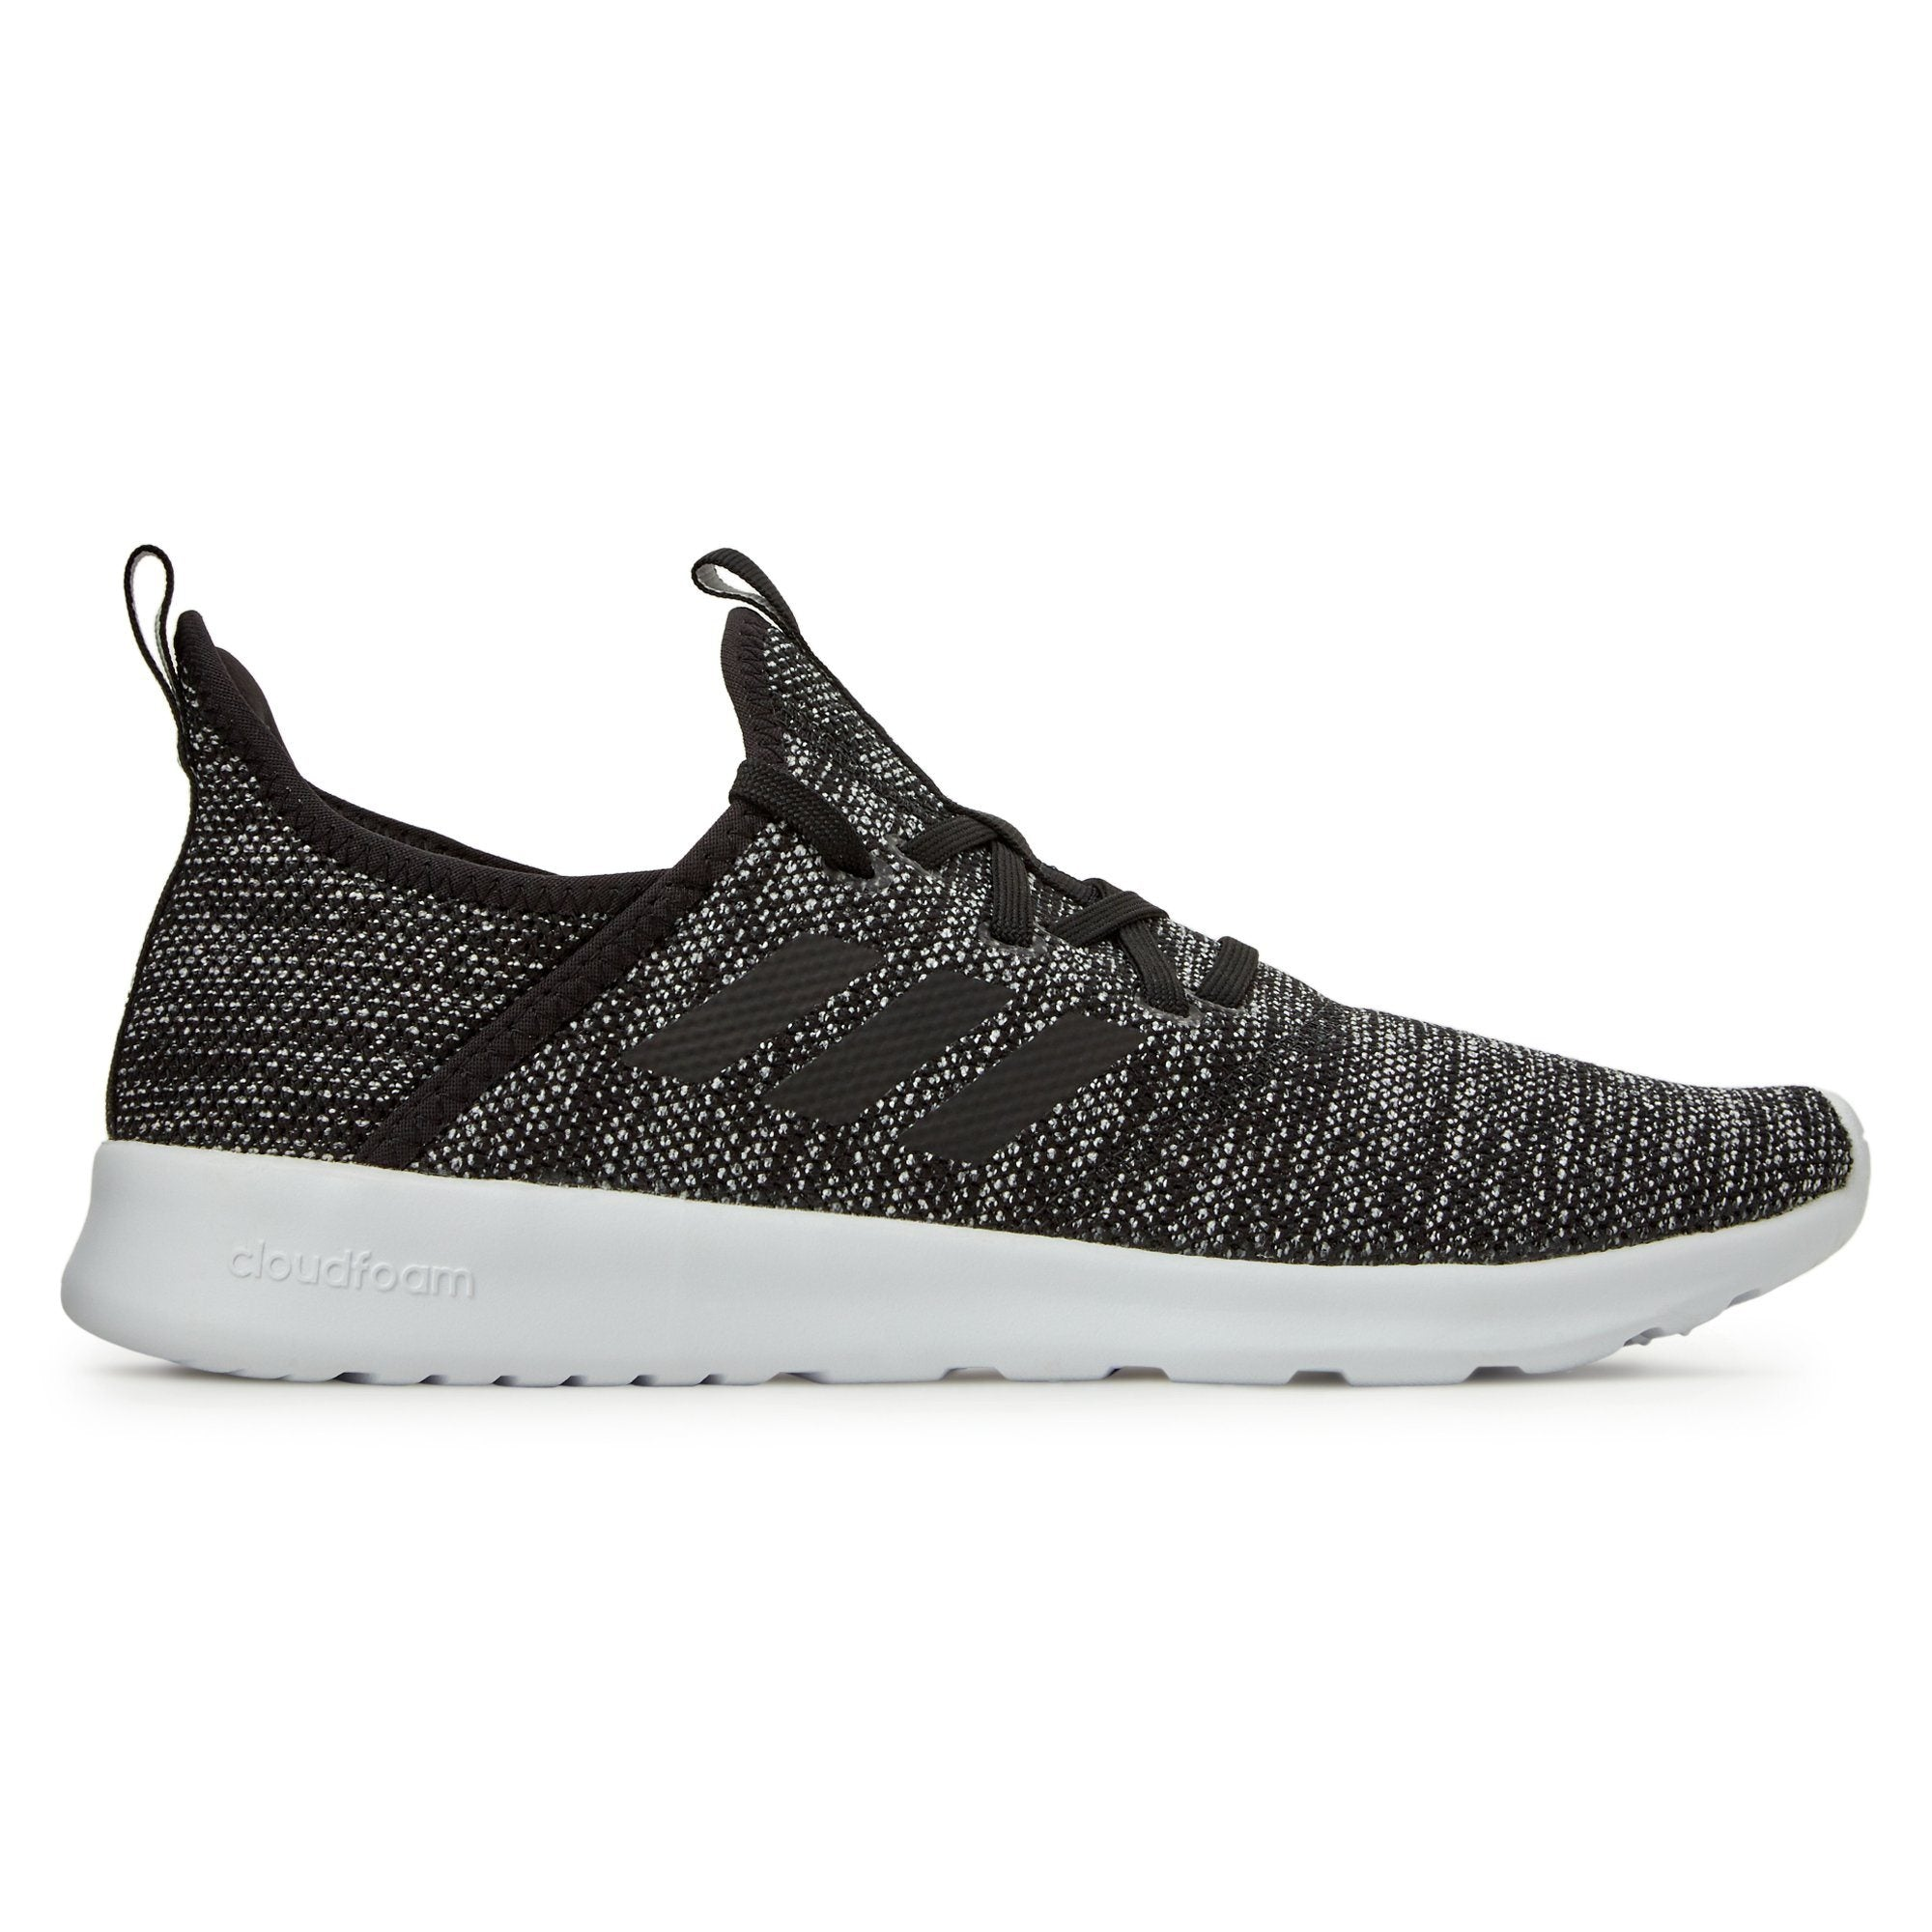 Adidas Women's Cloudfoam Pure Shoes - Core Black / Core Black / ftwr White Footwear Adidas